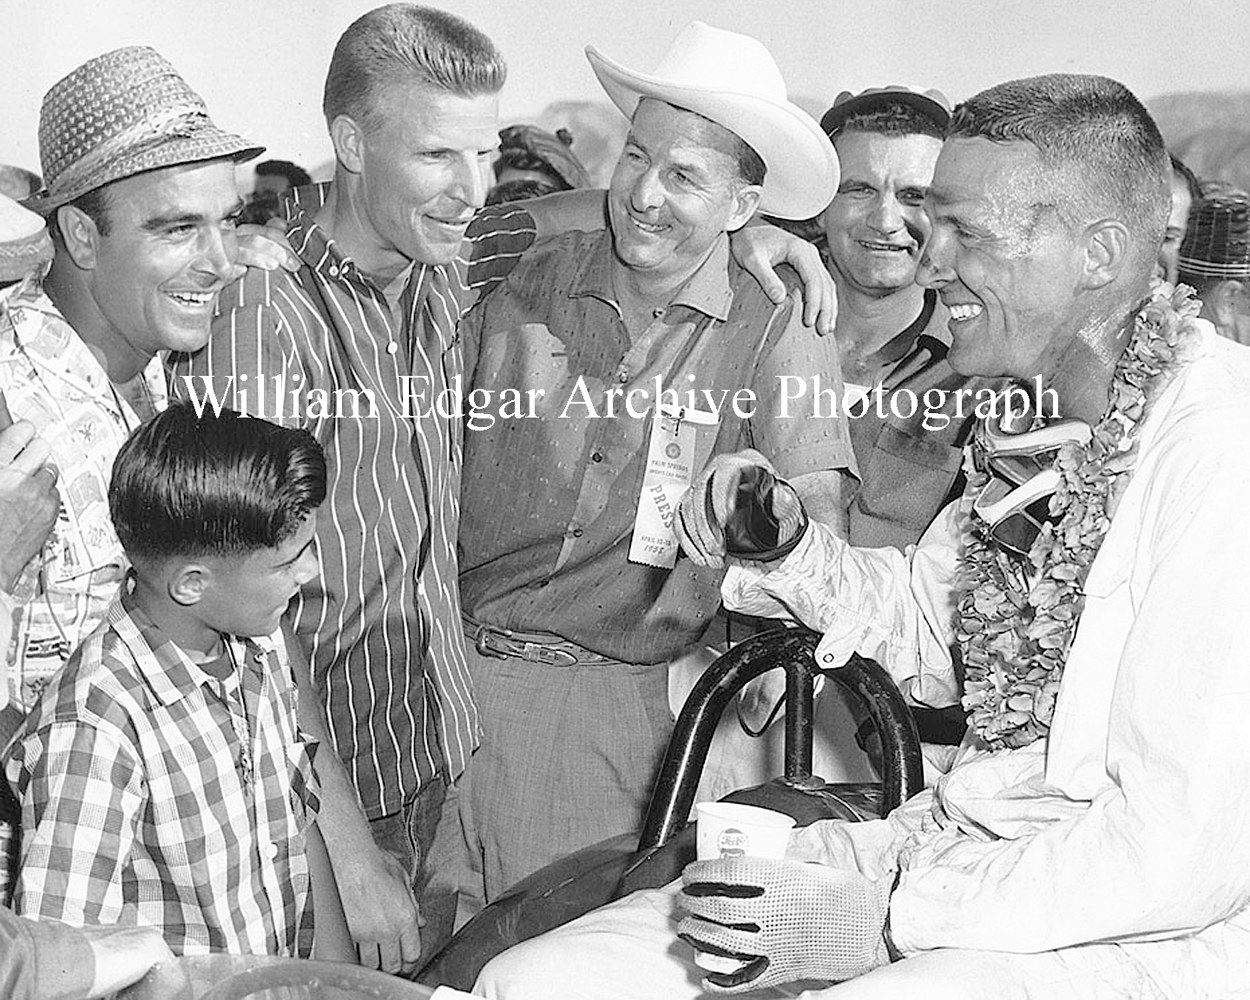 Photography [DG-VGPS8] Race winner Dan Gurney with Frank Arciero, Skip Hudson, Sam Hanks - Palm Springs - April 13, 1958 by William Edgar